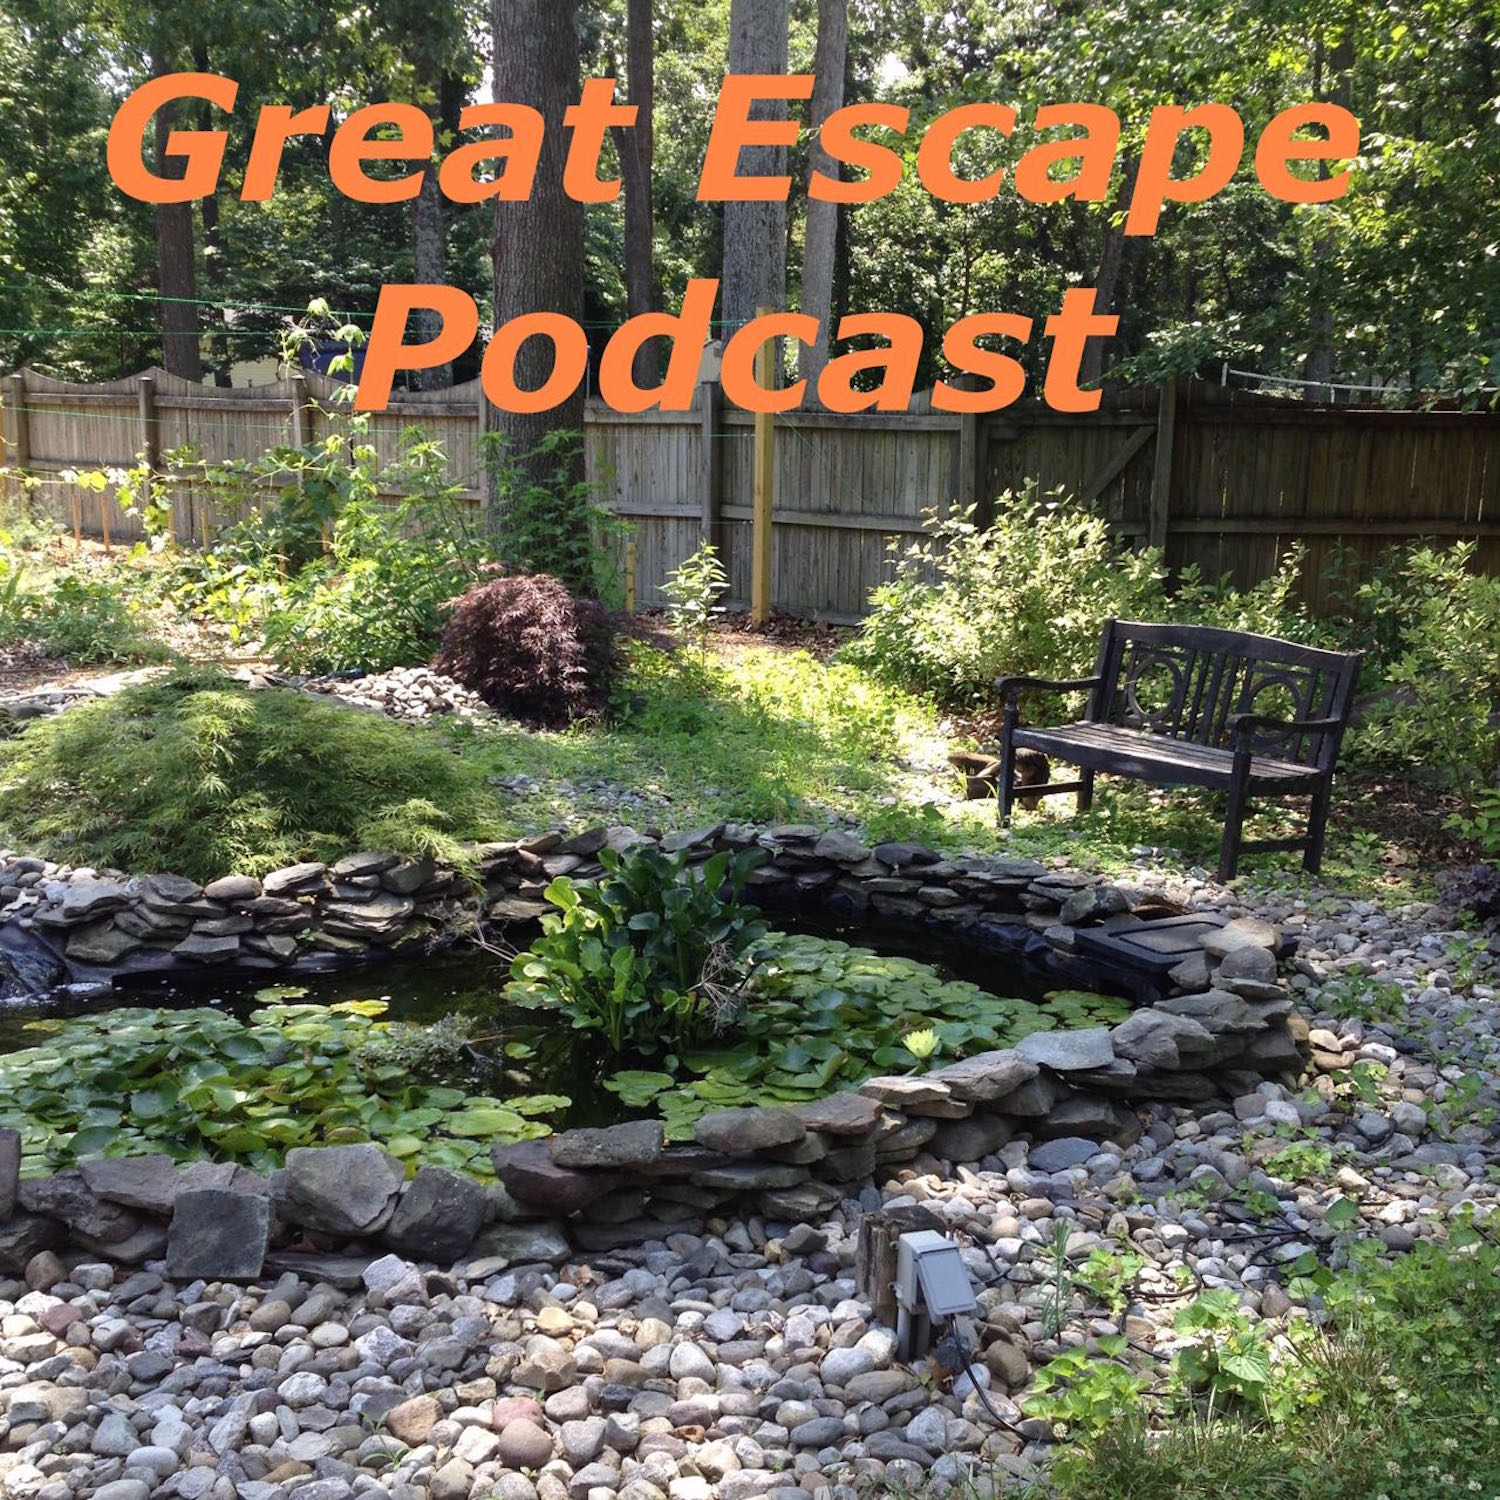 Epi030 – Blue Bean Plant Information, Chinese Magnolia Vine plant information, A Spring Walk Around the Homestead, and Time to Pot the Rooted Cuttings